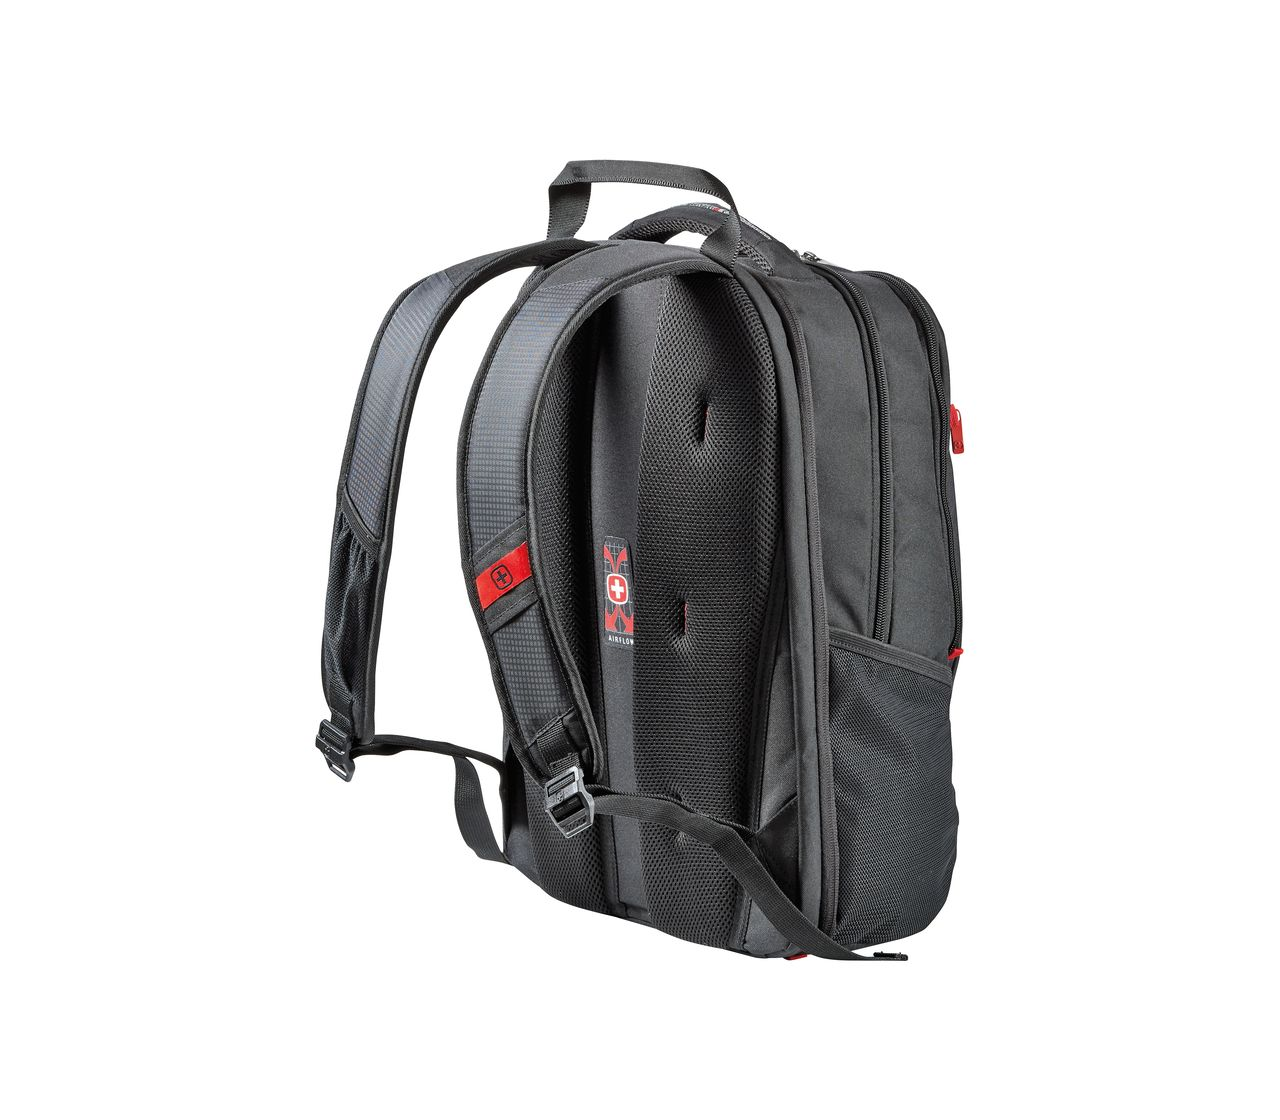 Cyberwork 16'' Checkpoint Friendly Laptop Backpack-604969